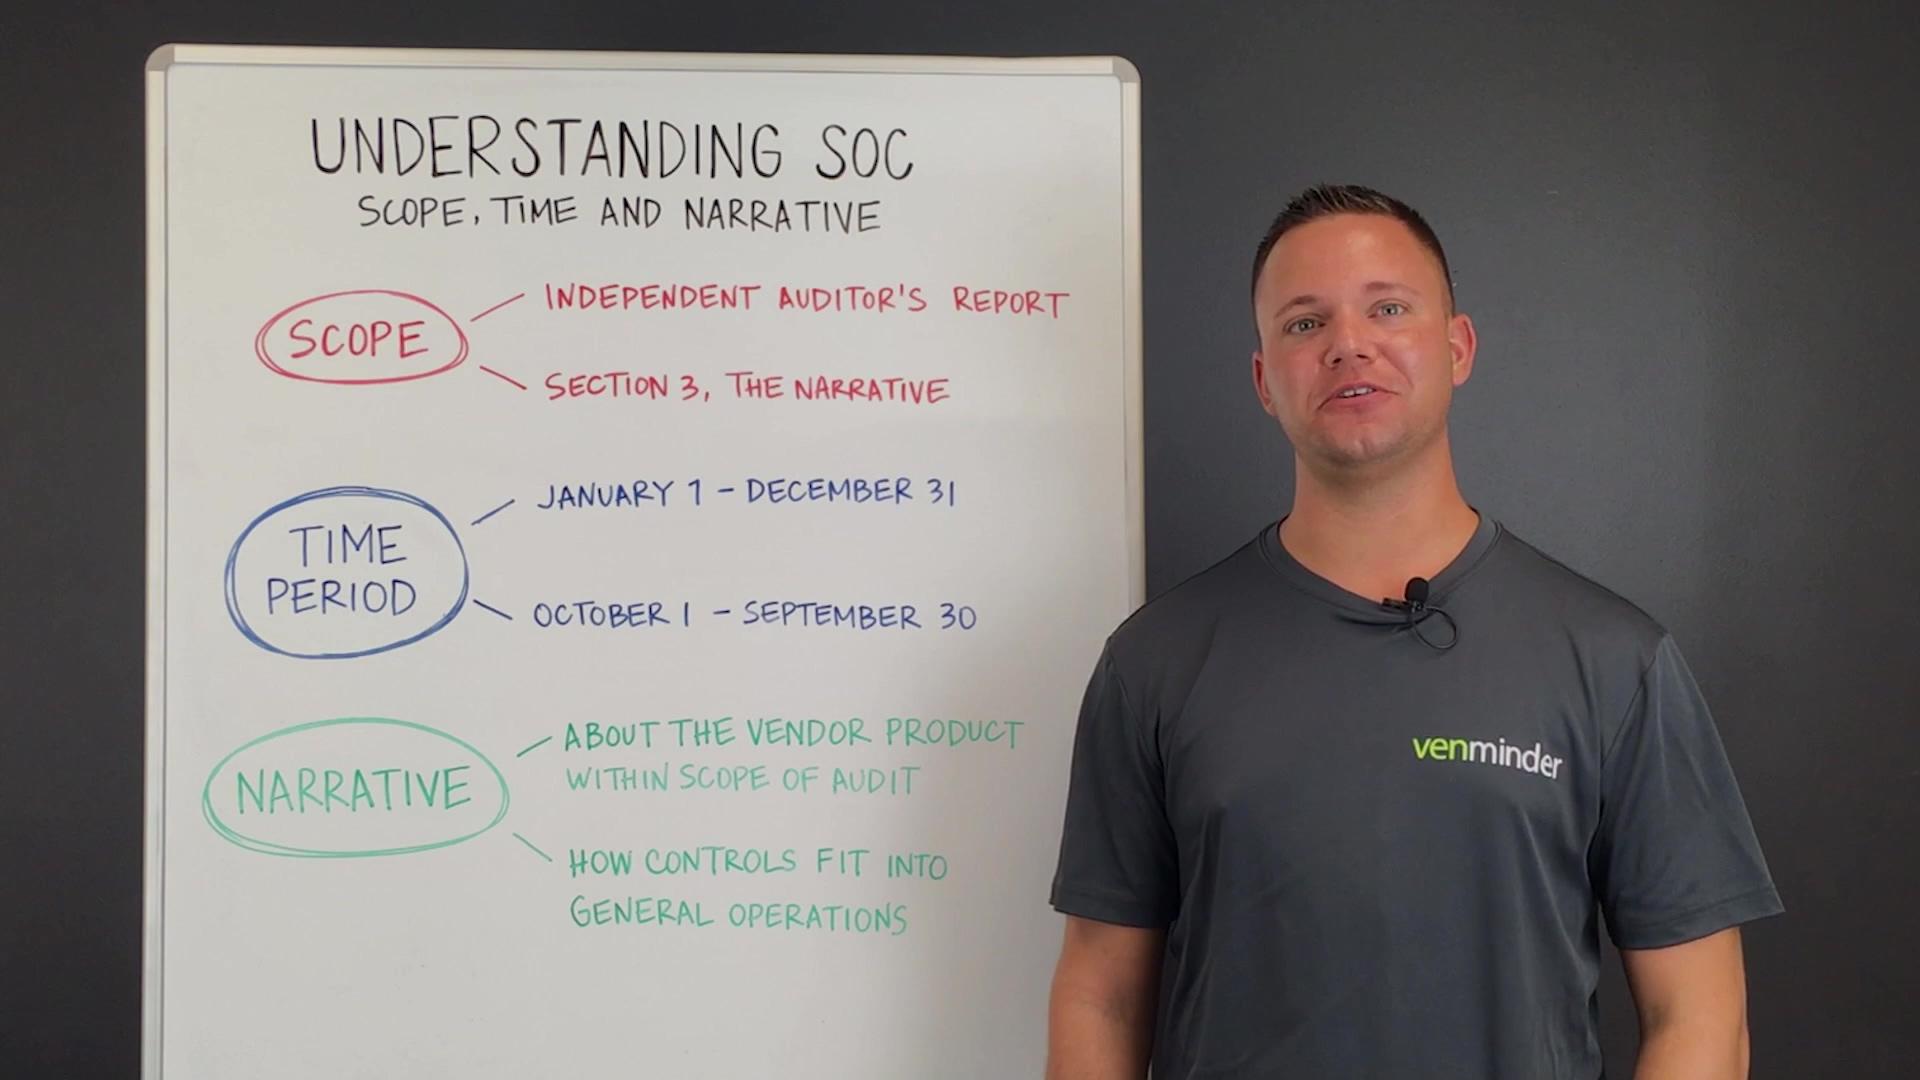 38-Understanding SOC Scope, Time and Narrative - FINAL